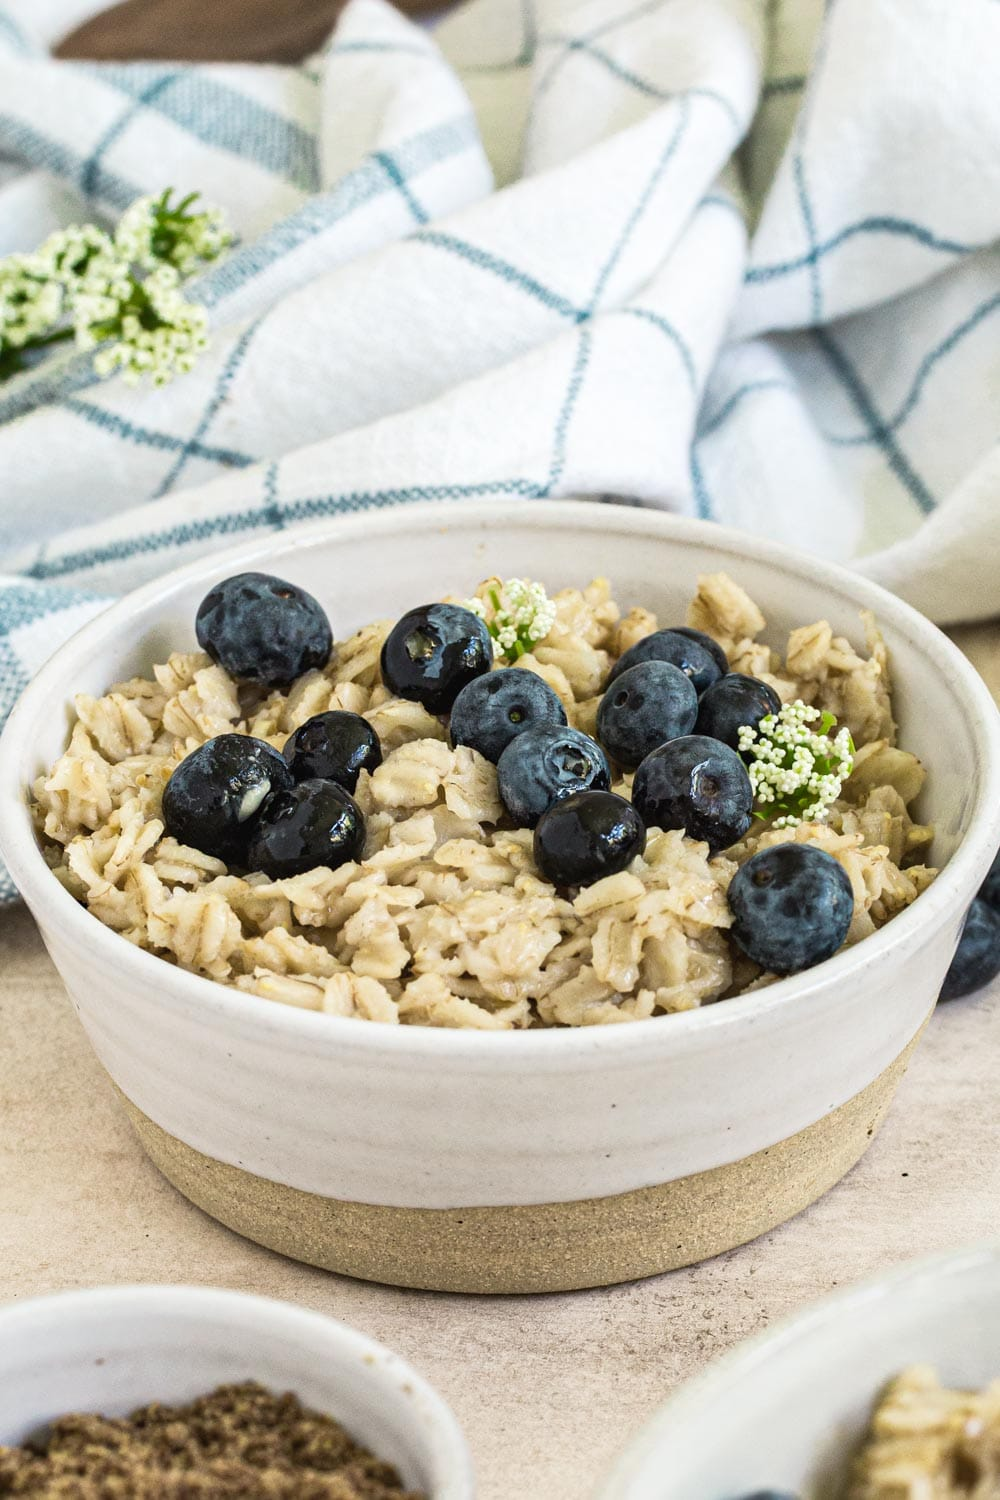 flaxseed oatmeal topped with blueberries and syrup in a white bowl with blue checked dish towel behind